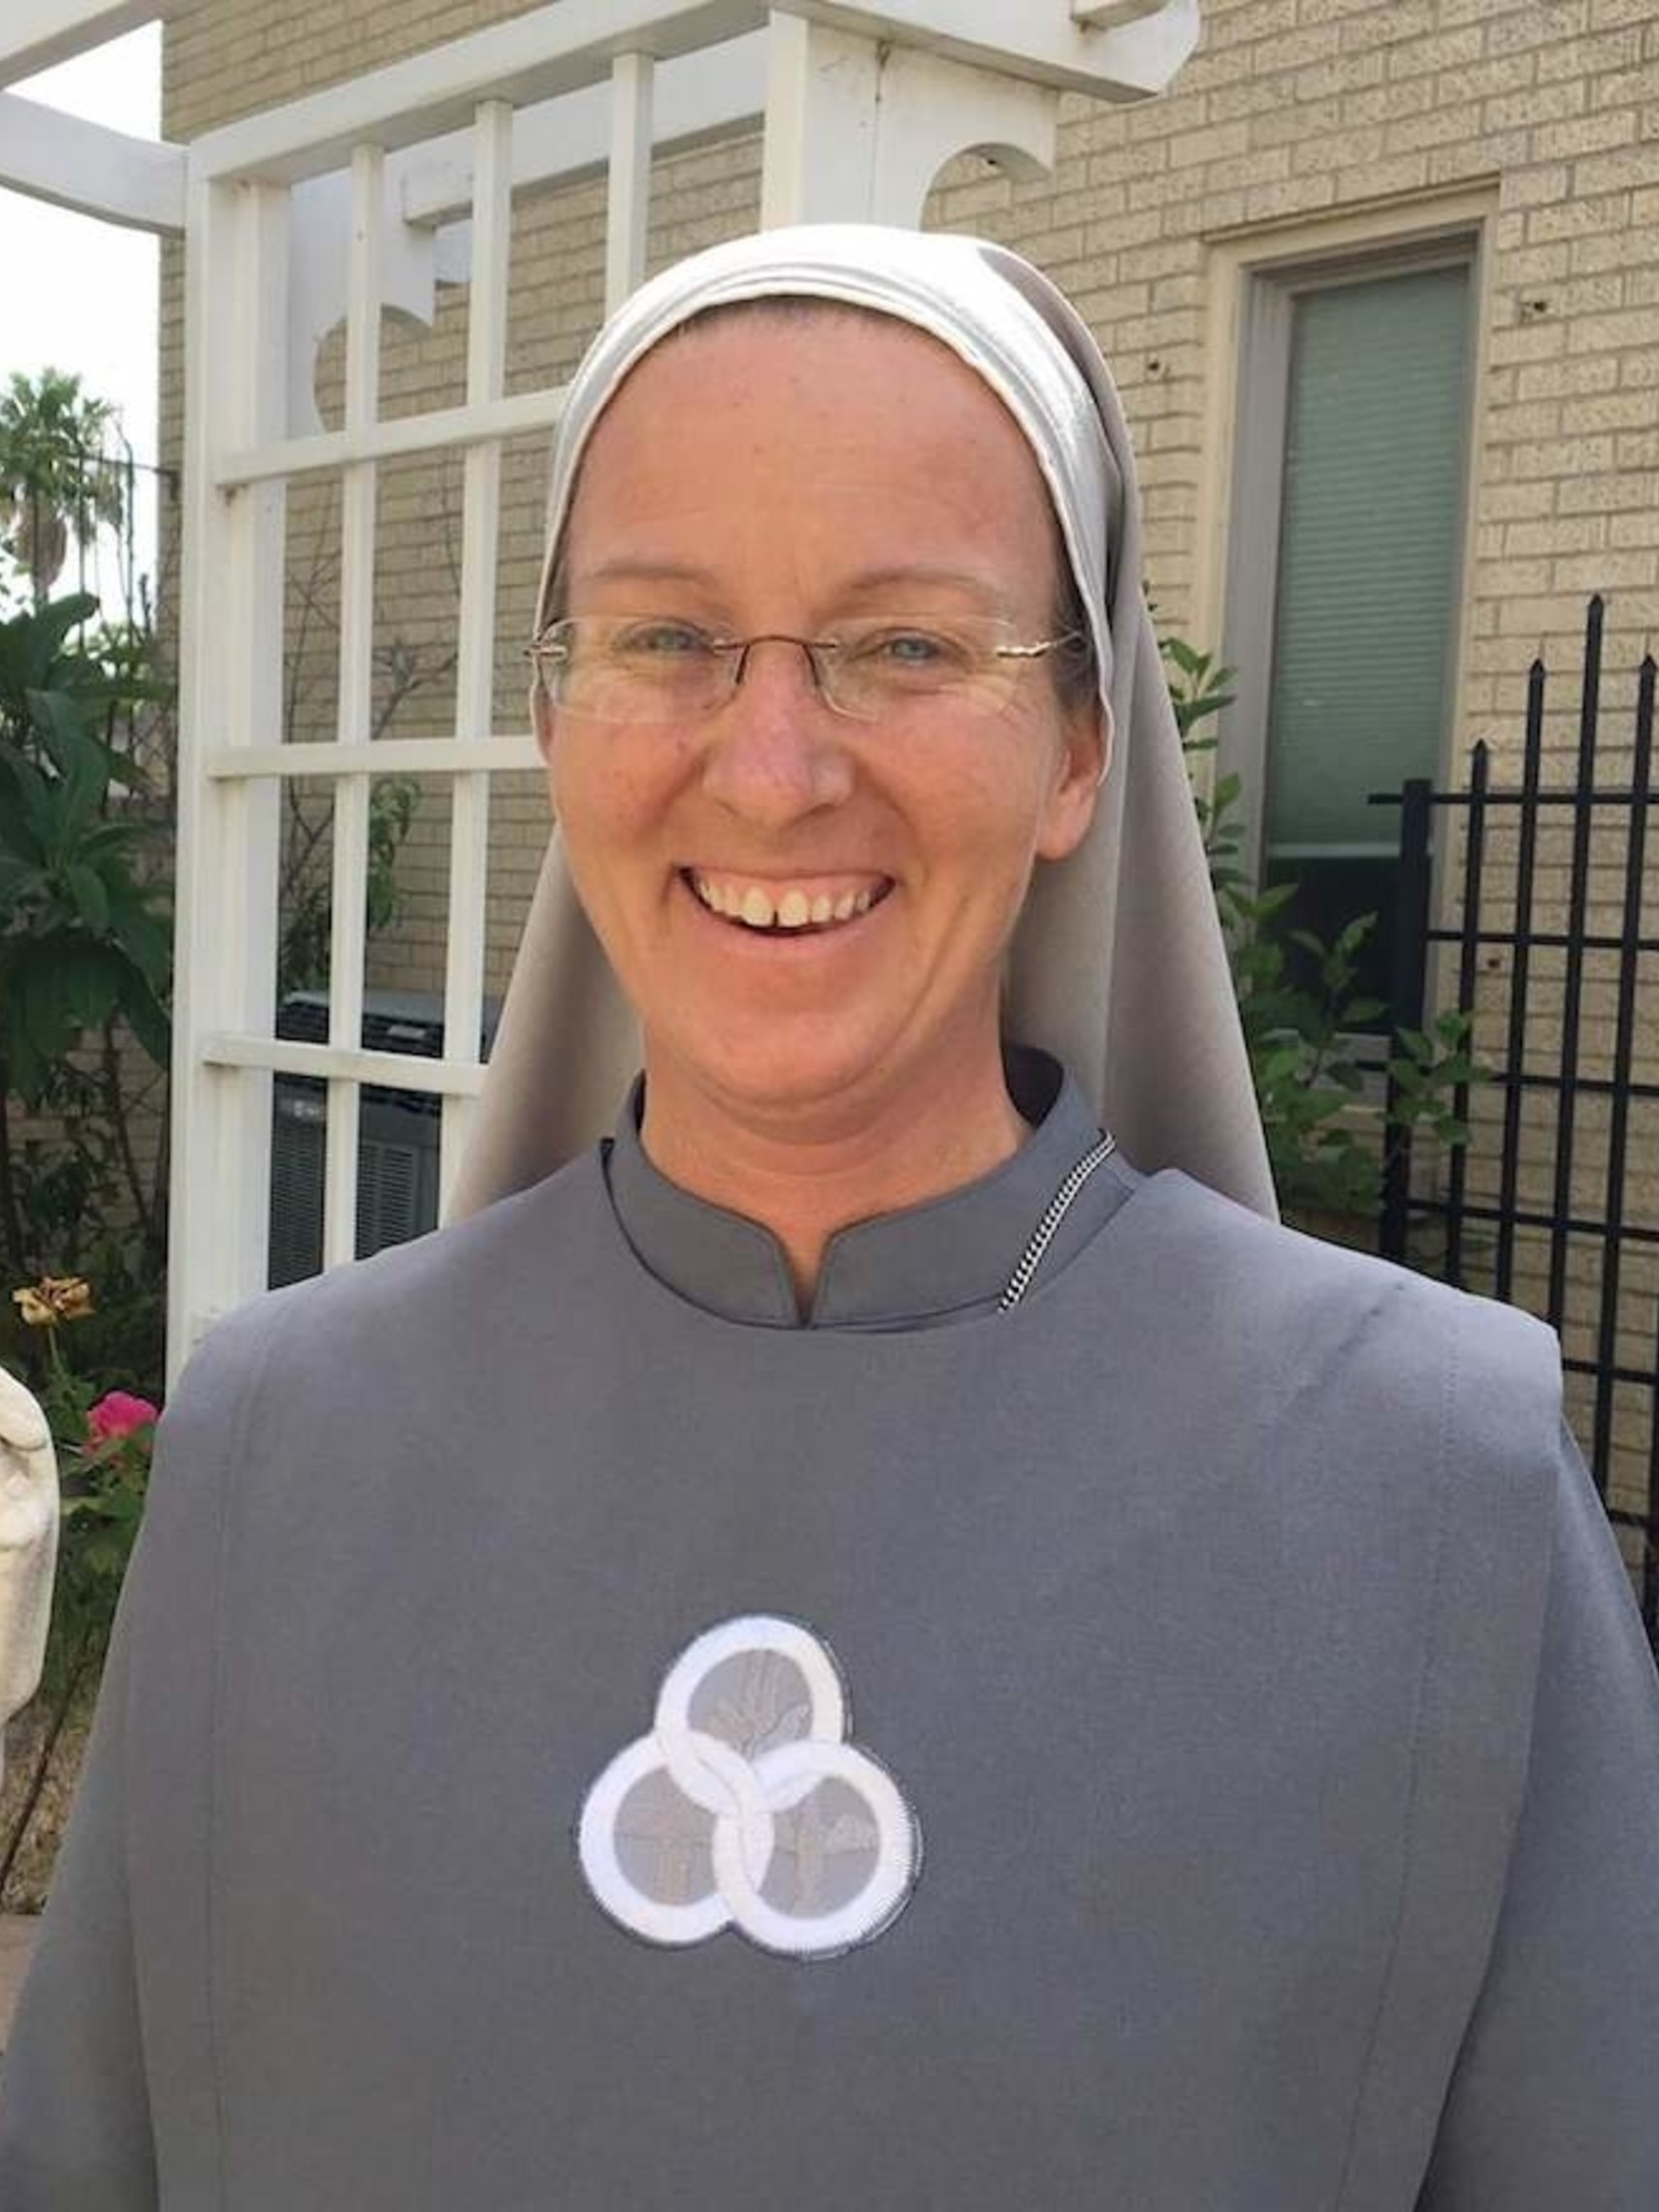 Sr. Mediatrix